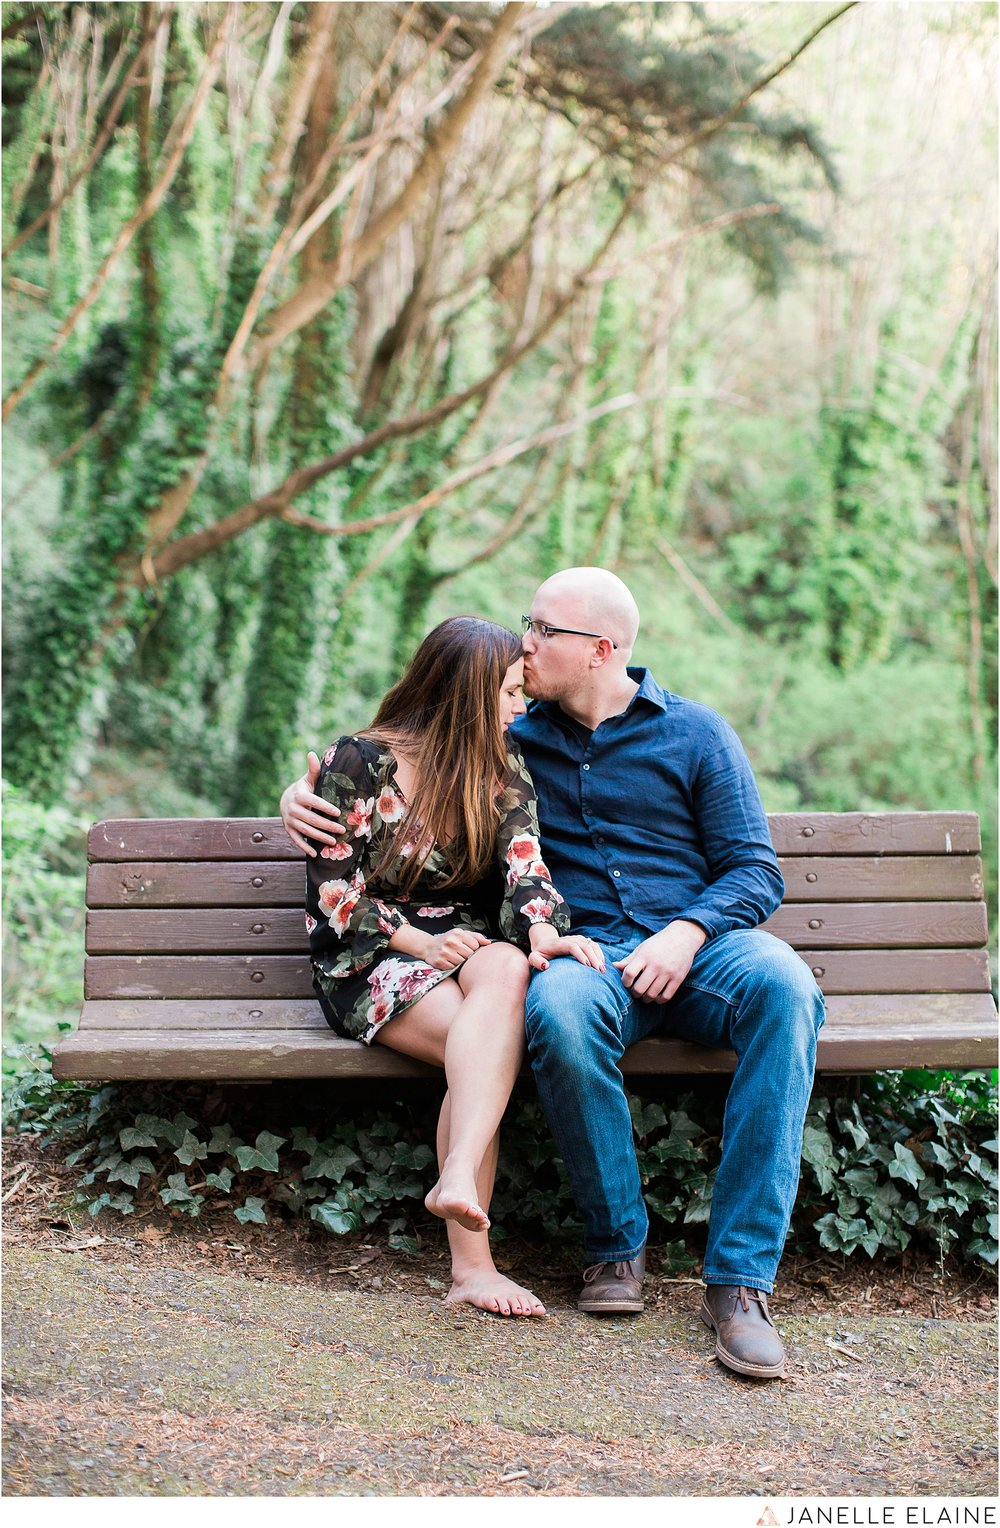 tricia dane-engagement-seattle-janelle elaine photography-271.jpg